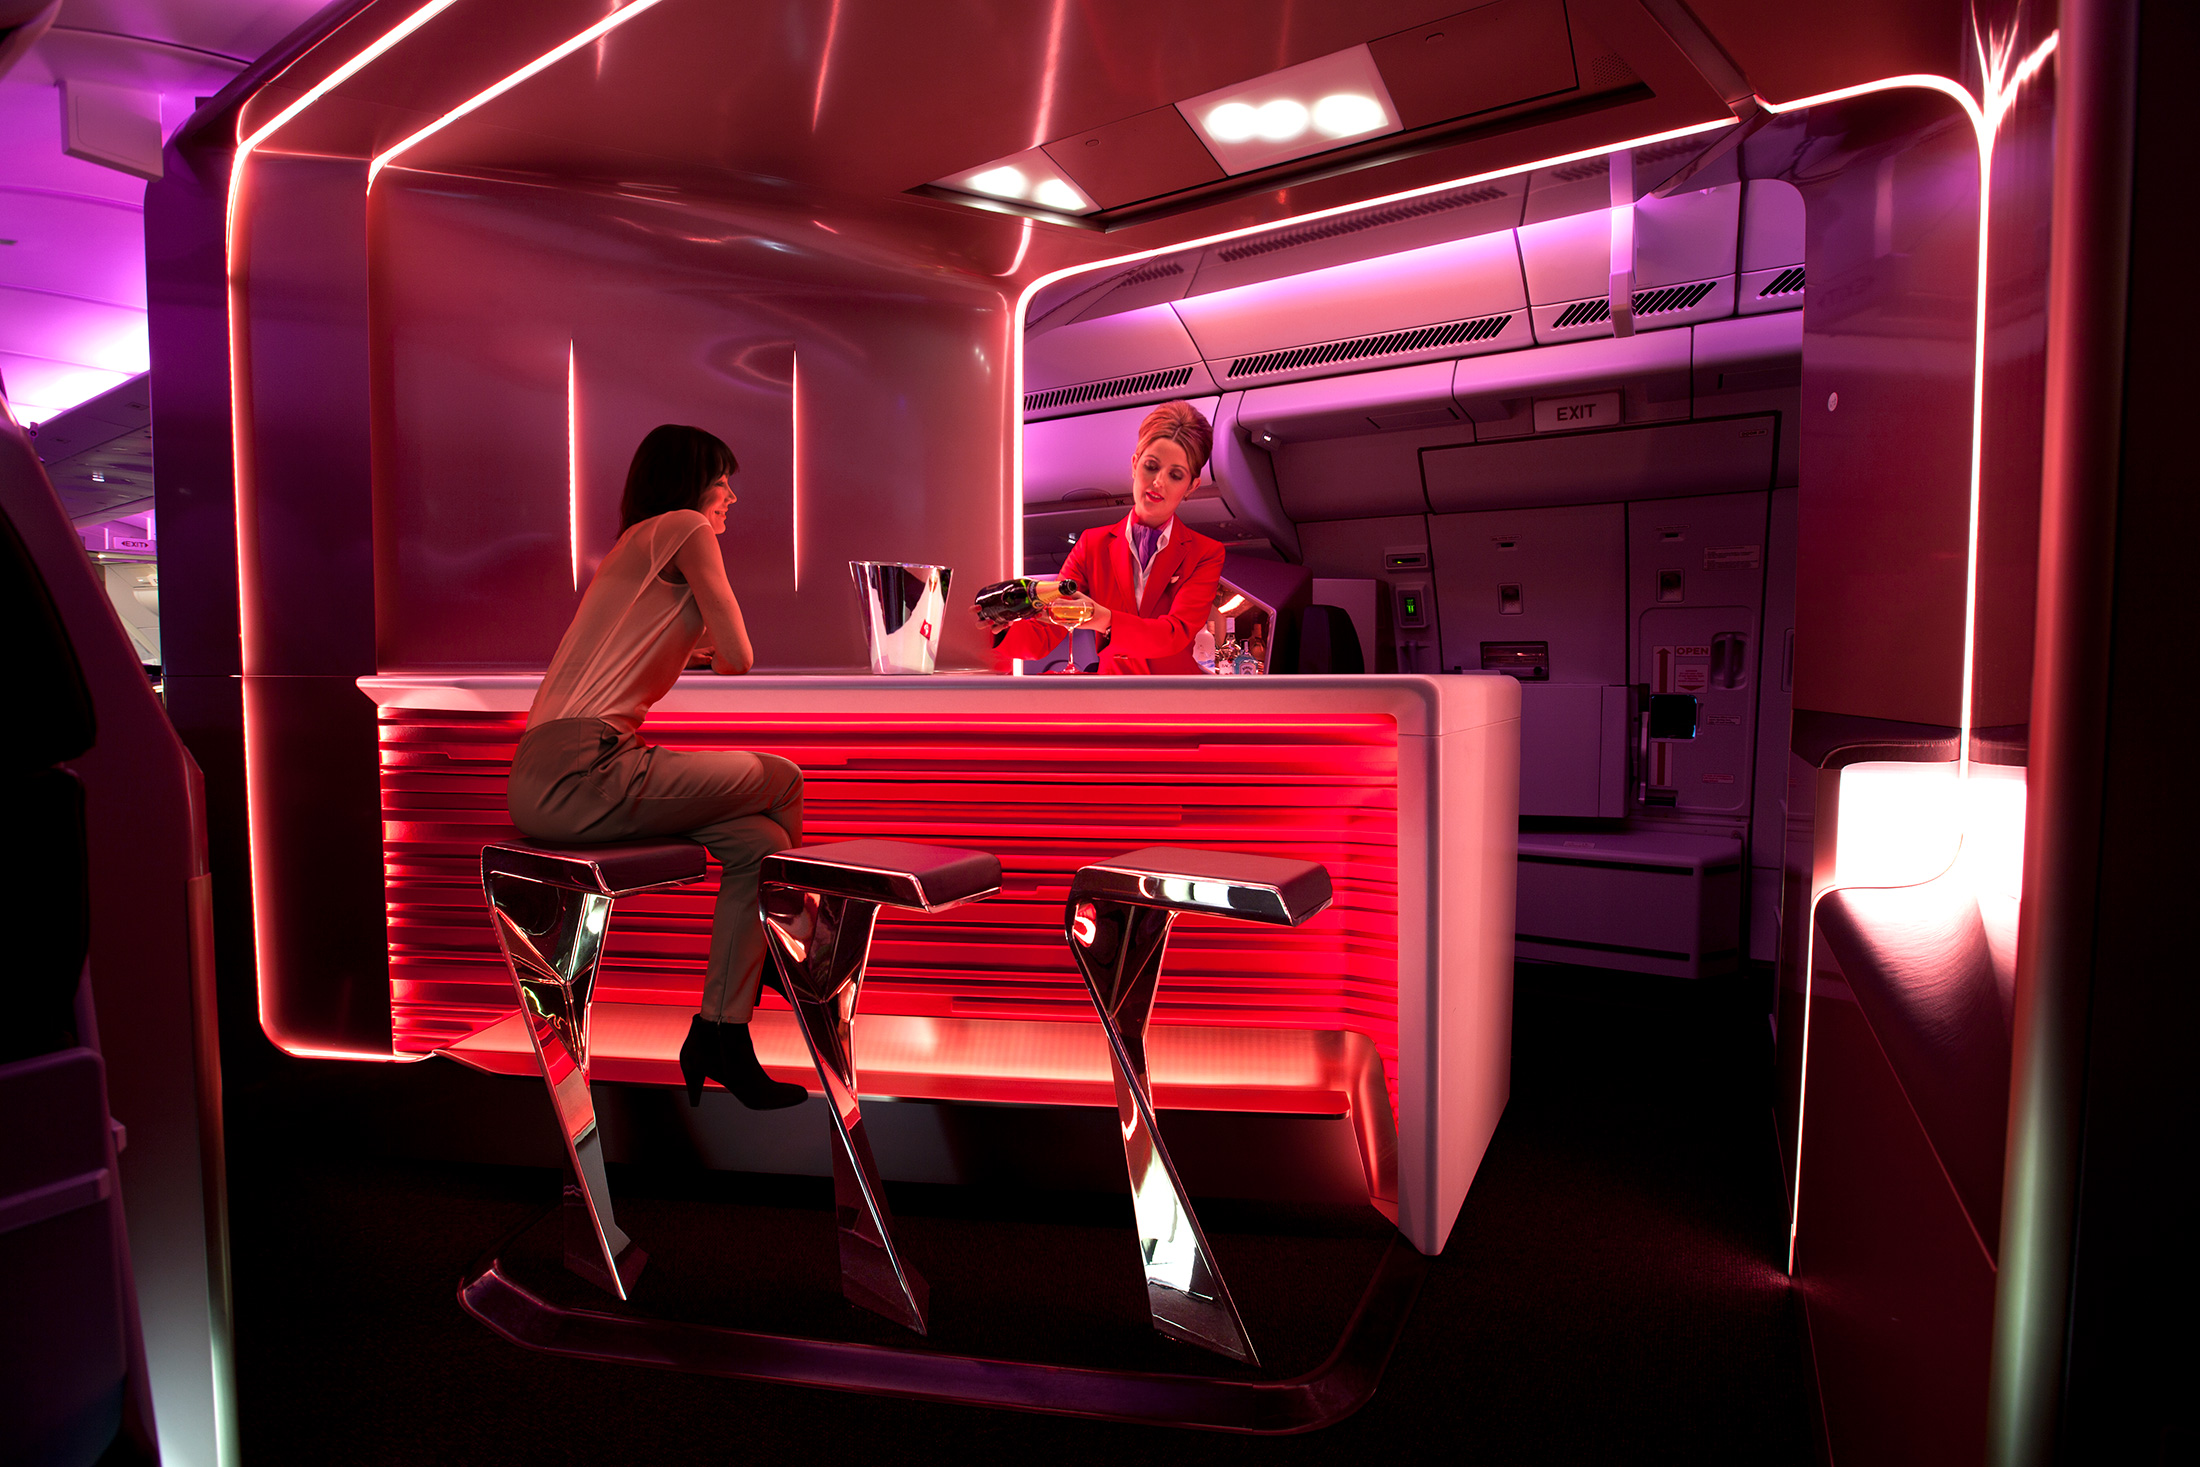 The Upper Class bar on a Virgin Atlantic airplane. (Photo: Courtesy Virgin Atlantic)